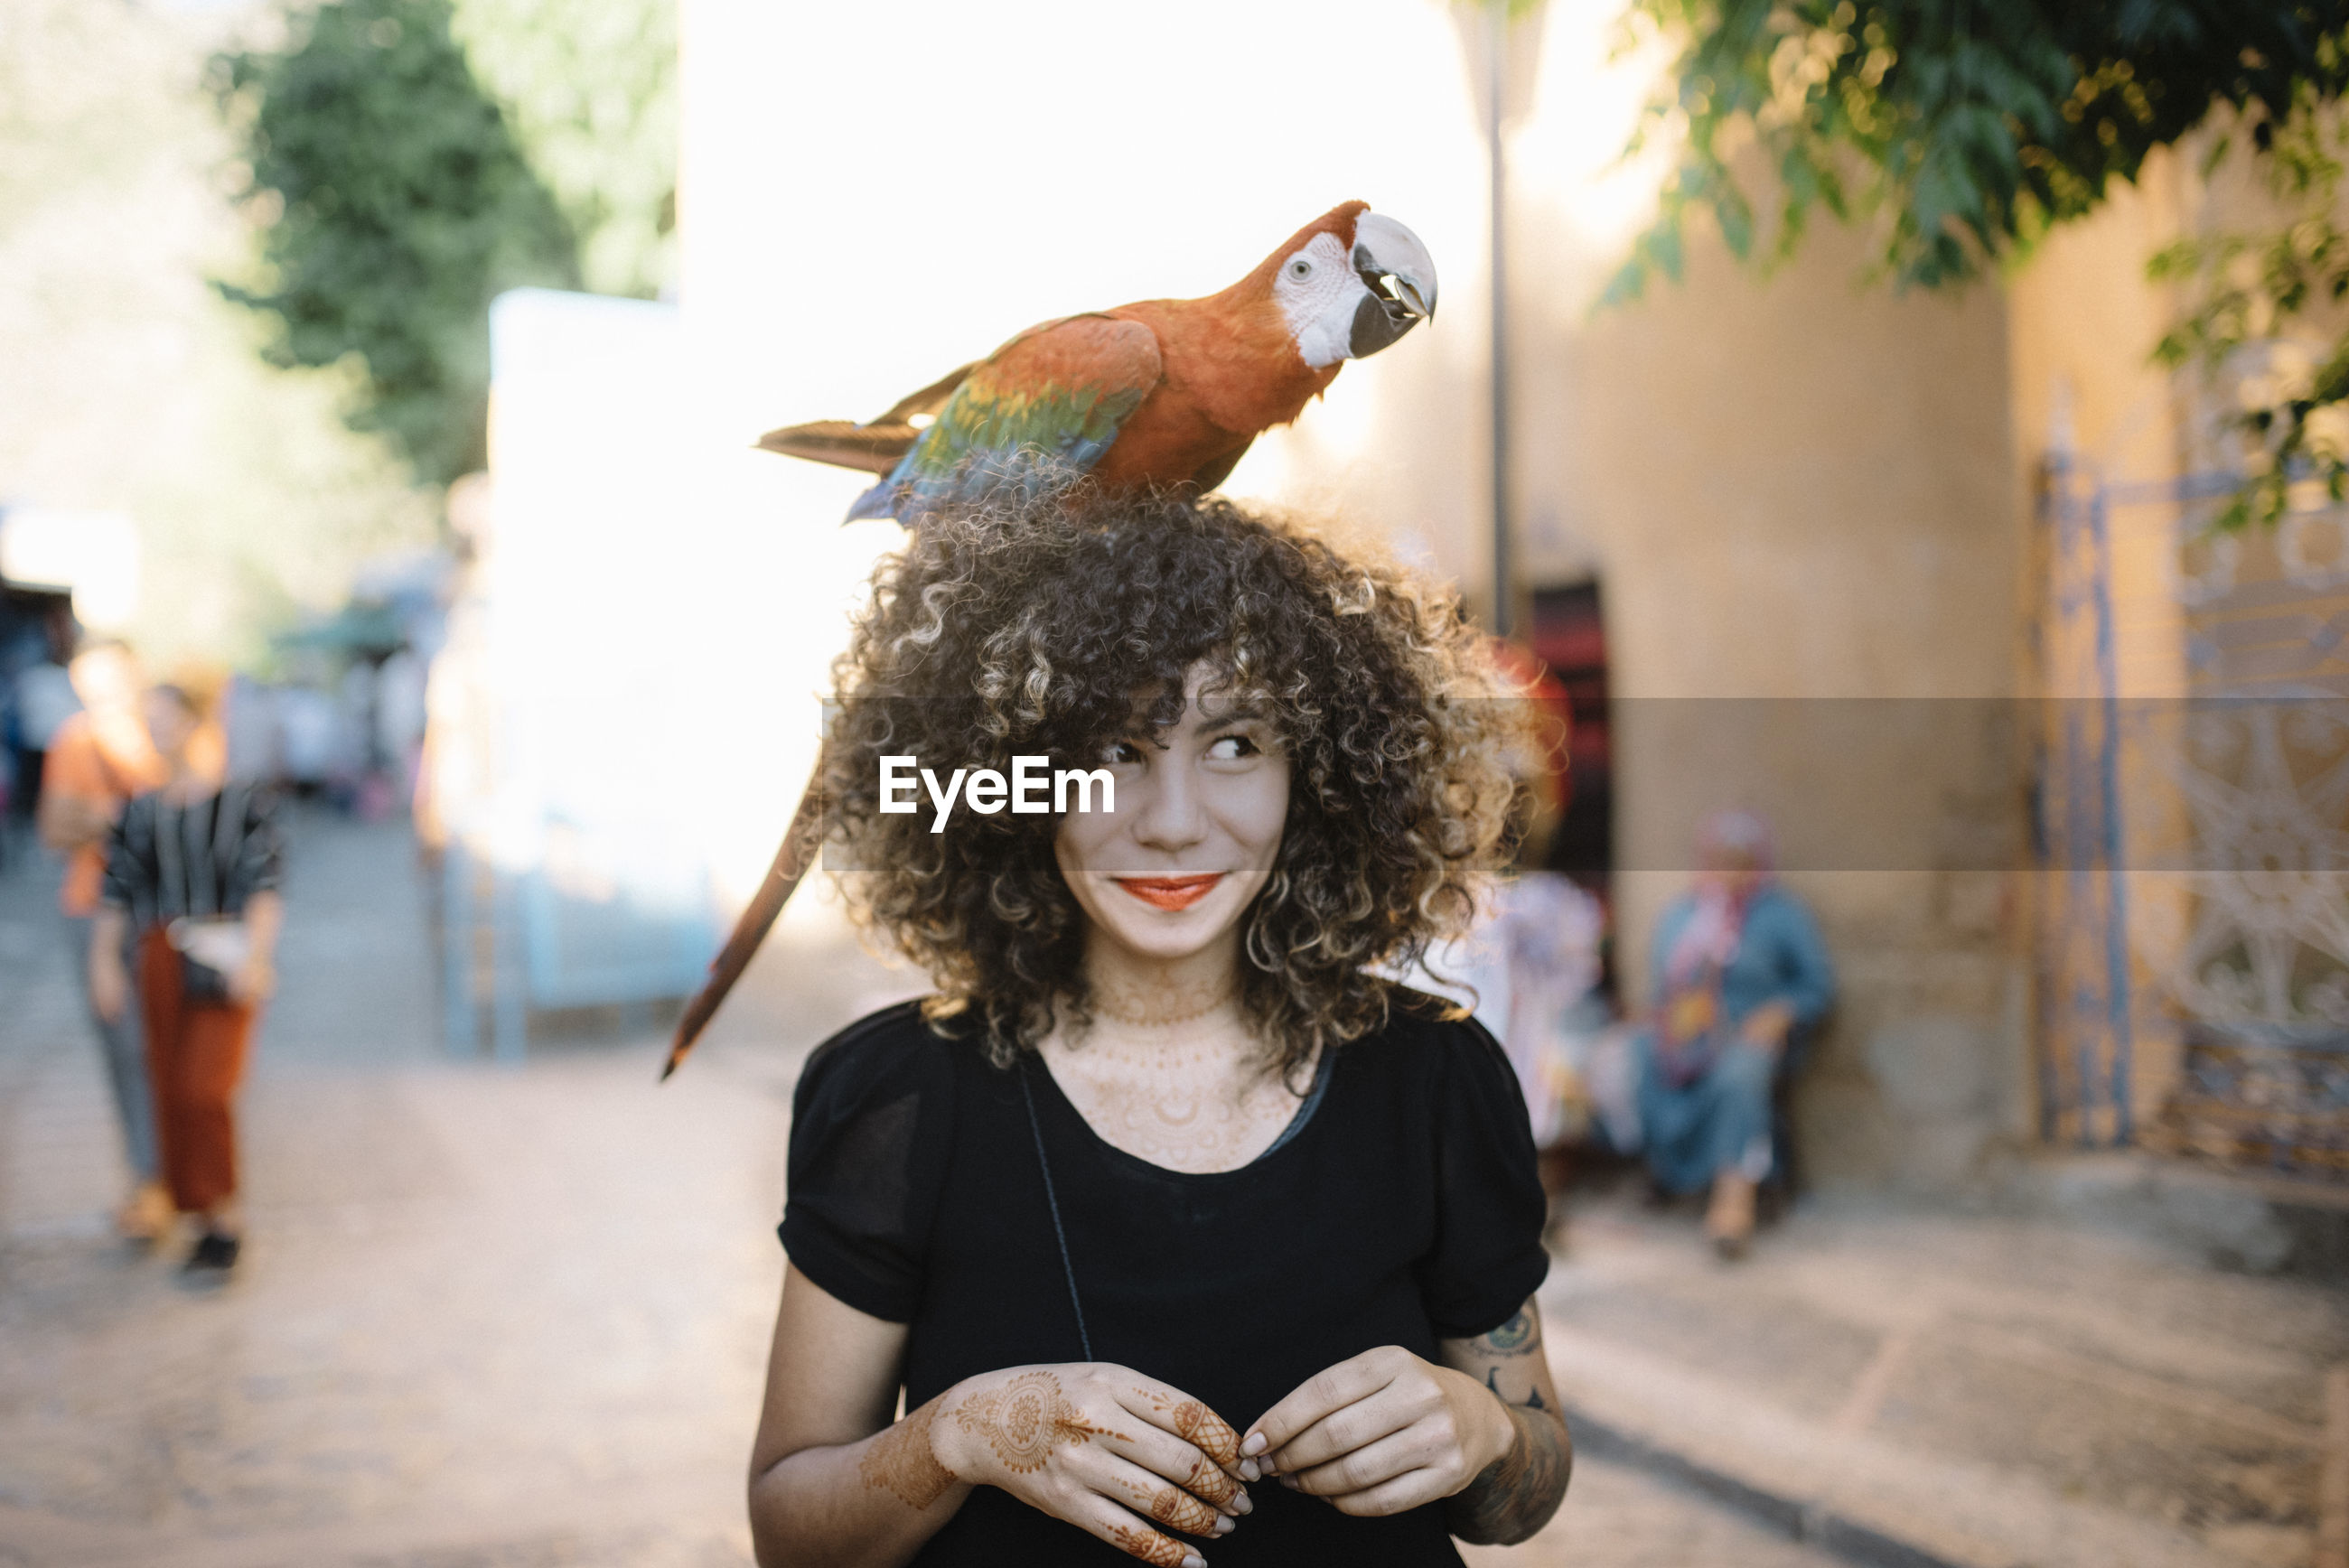 Young woman with macaw on head in city